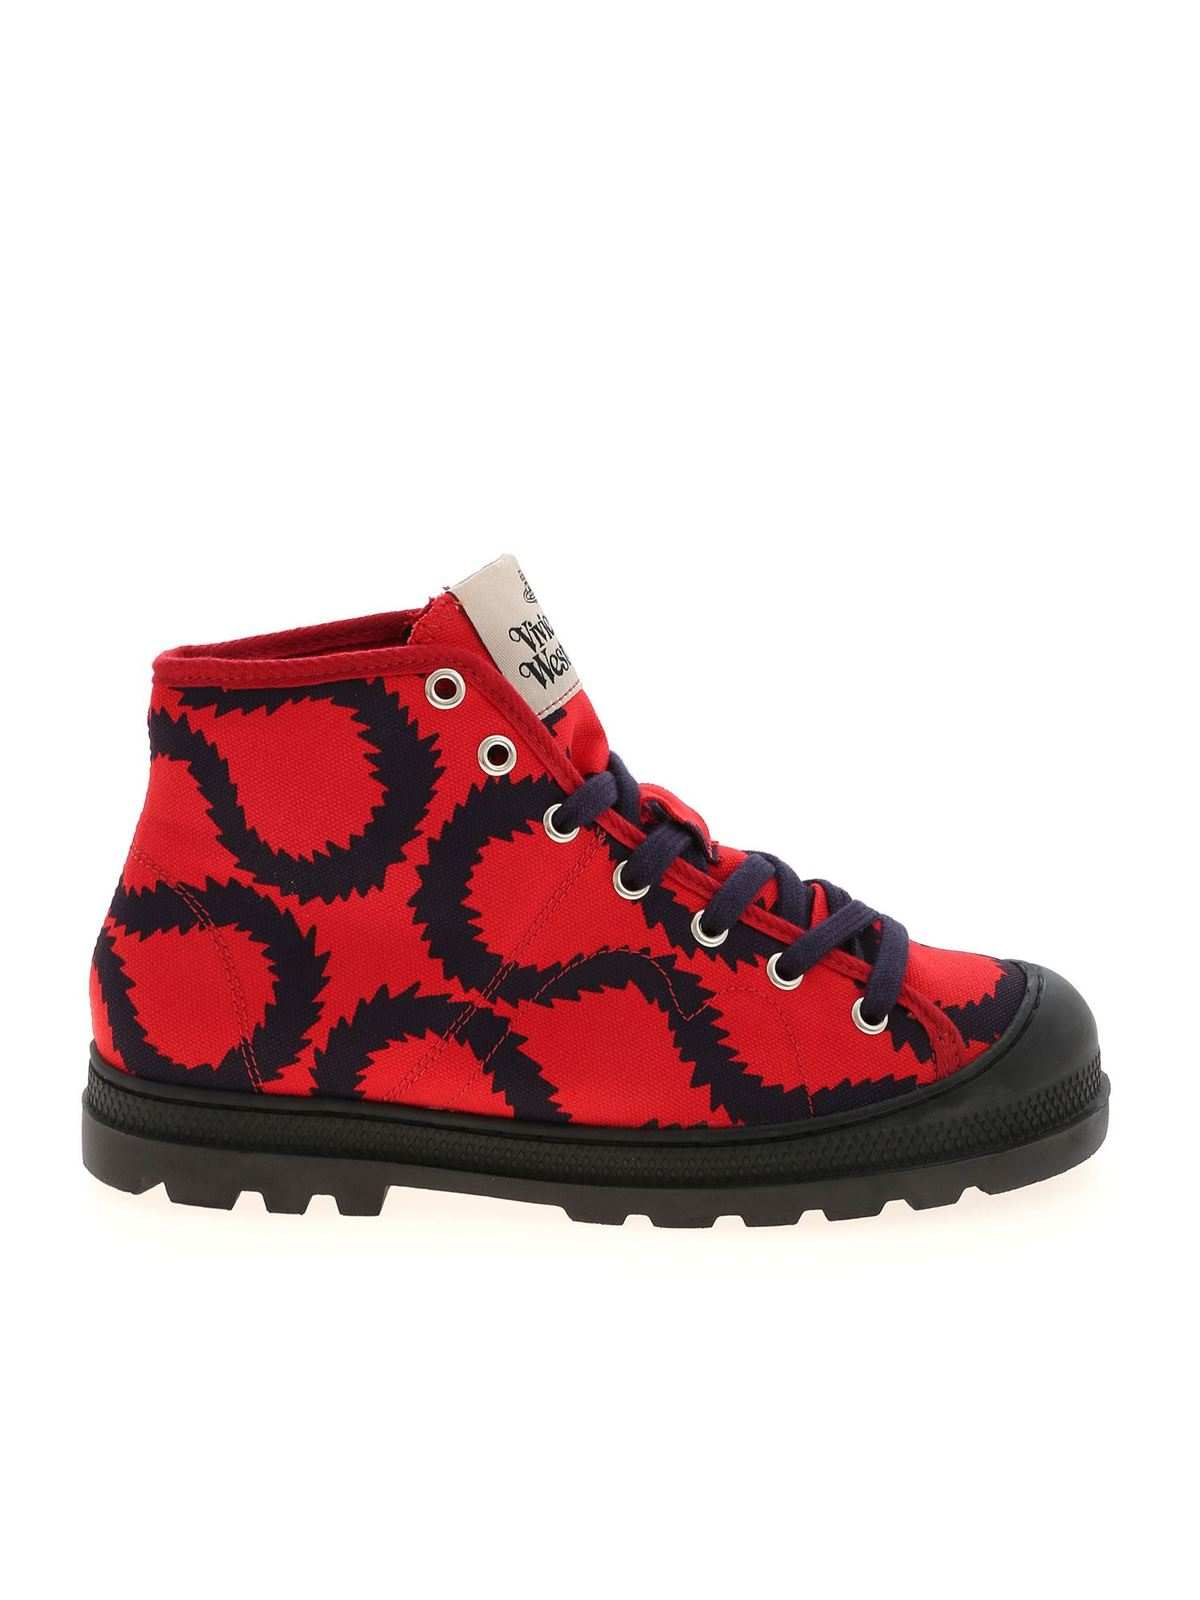 Vivienne Westwood SIMIAN SQUIGGLE SNEAKERS IN RED